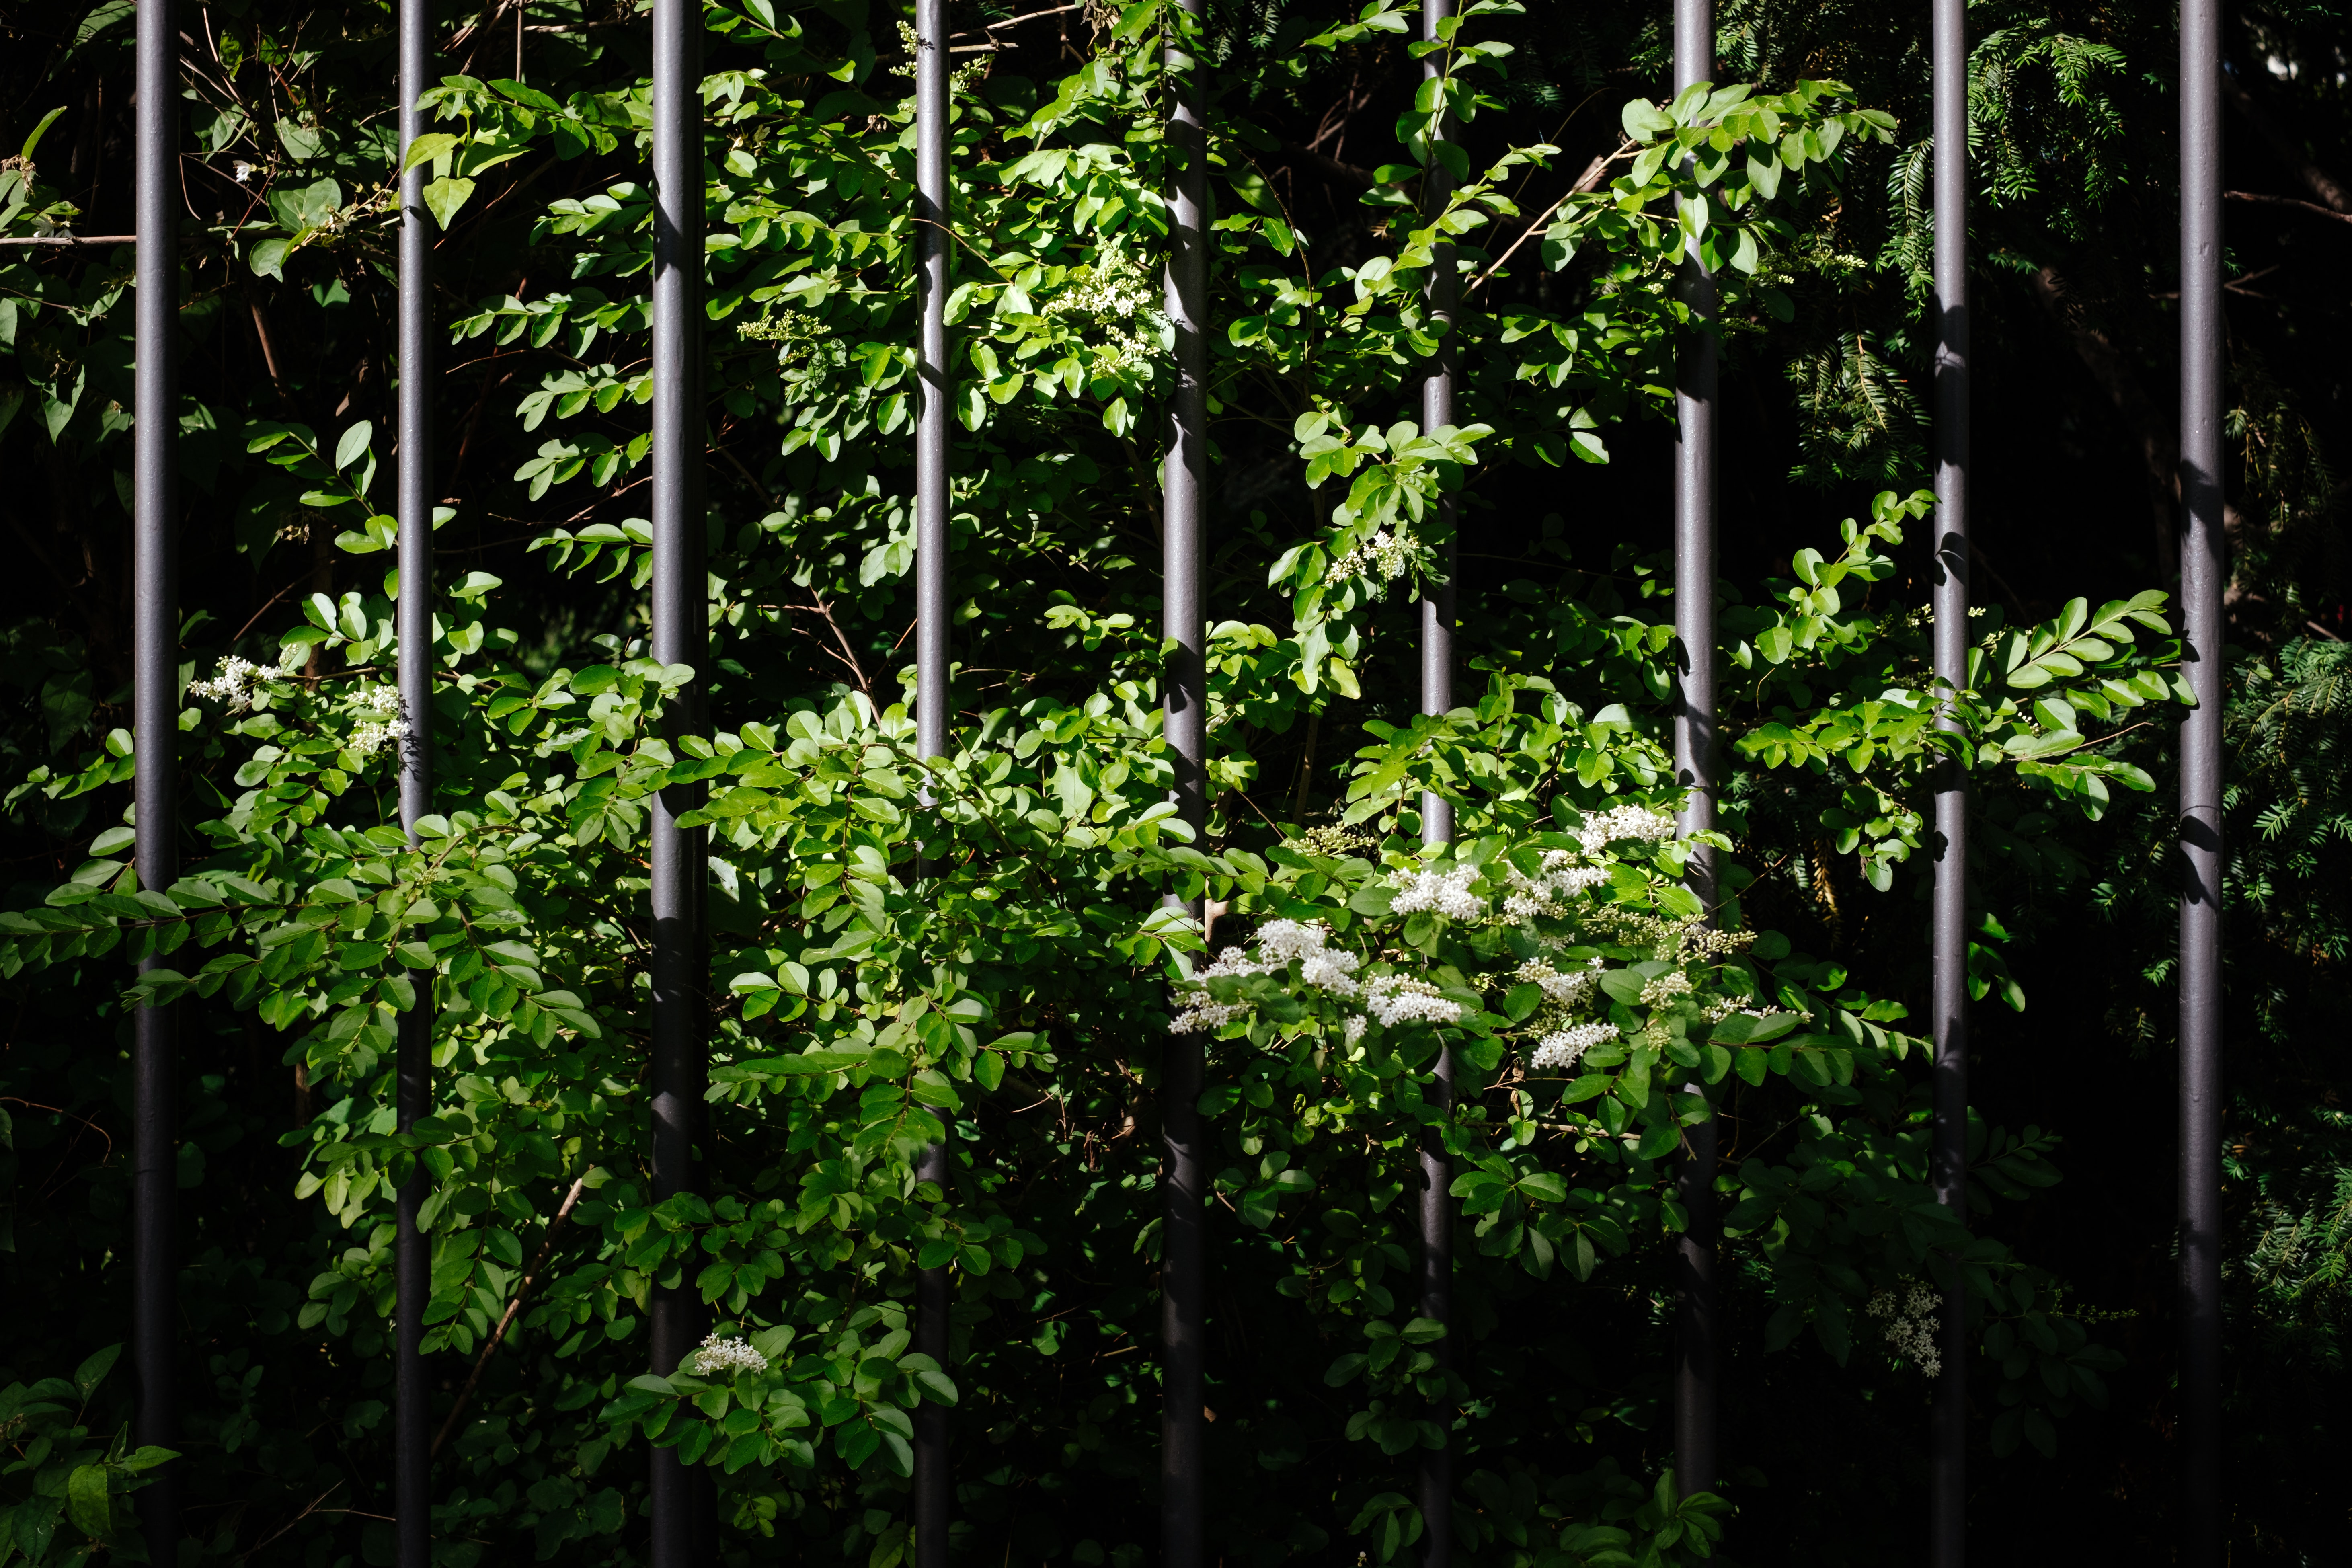 green plants overlapping on fence